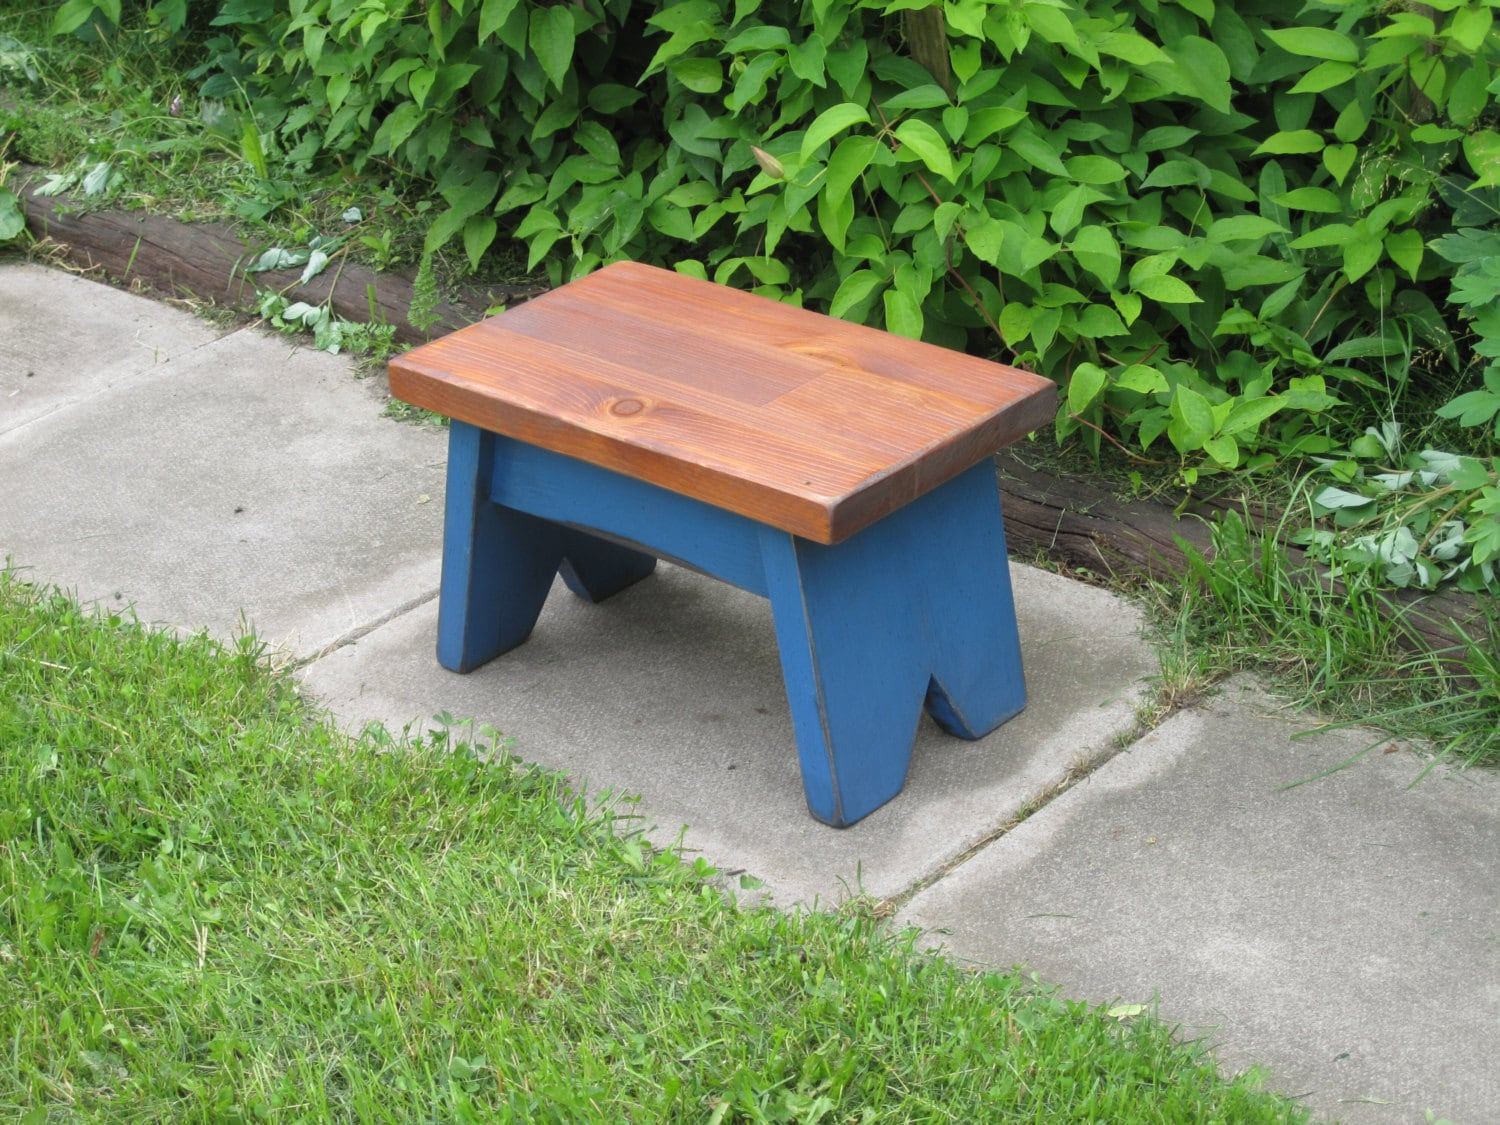 Wooden Step Stool Small Wooden Bench By